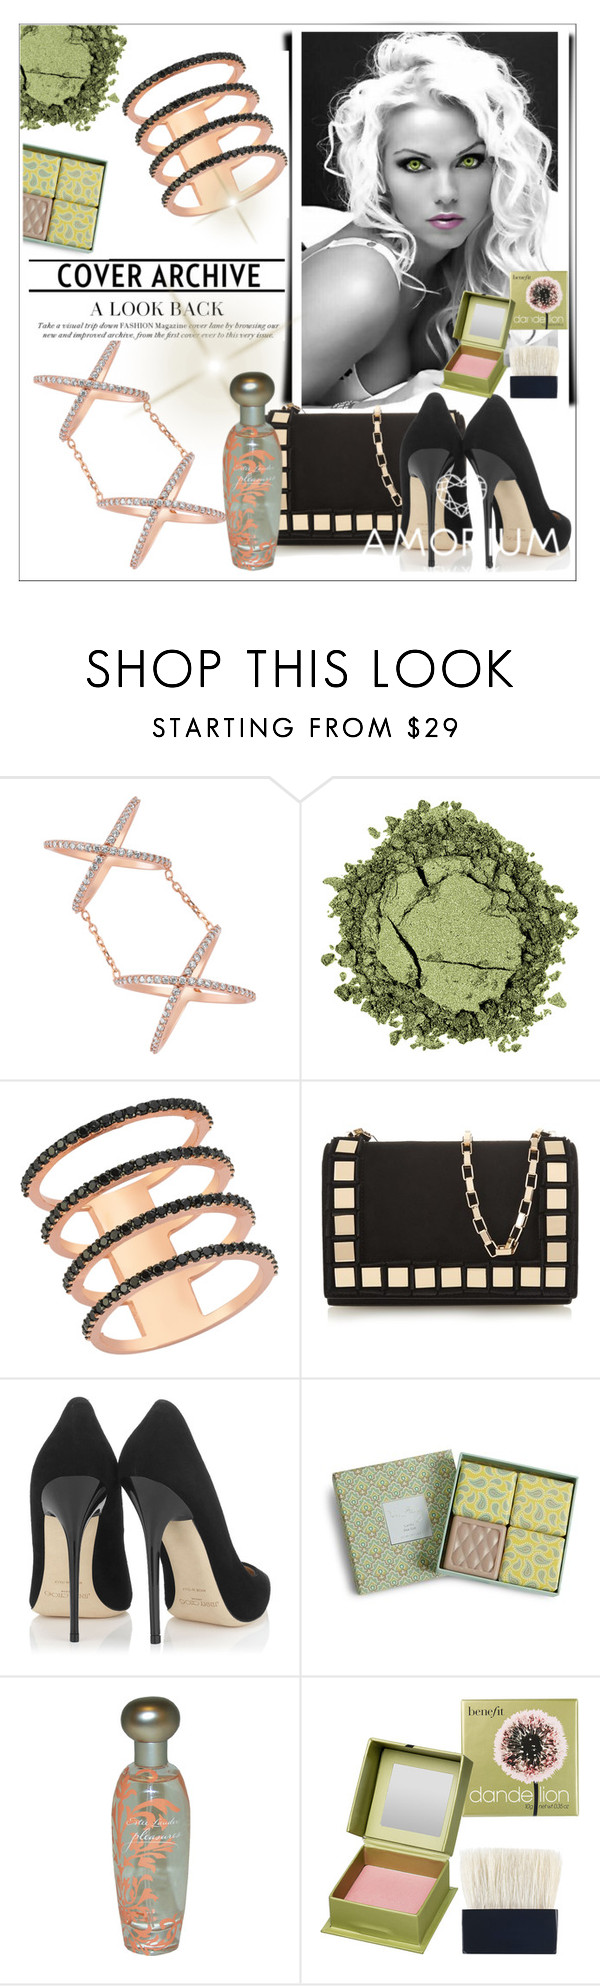 """AMORIUM 4."" by selmir ❤ liked on Polyvore featuring beauty, Tomasini, Jimmy Choo, Vera Bradley, Estée Lauder and Benefit"